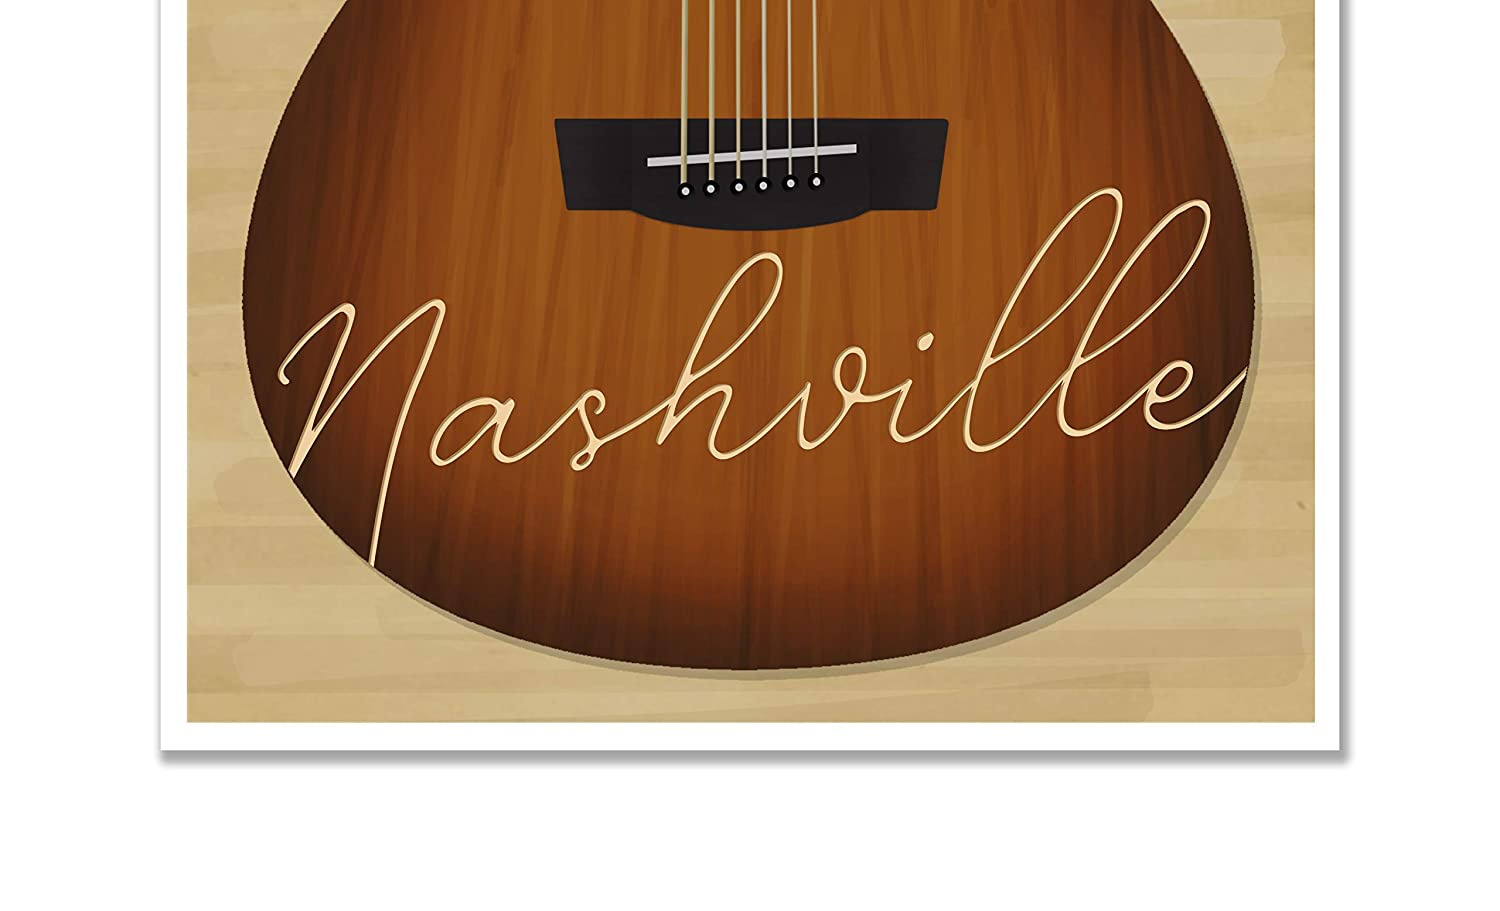 Nashville Guitar Travel Art Poster Print Tennessee Vintage Hanging Wall Art 11-inch by 14-inch